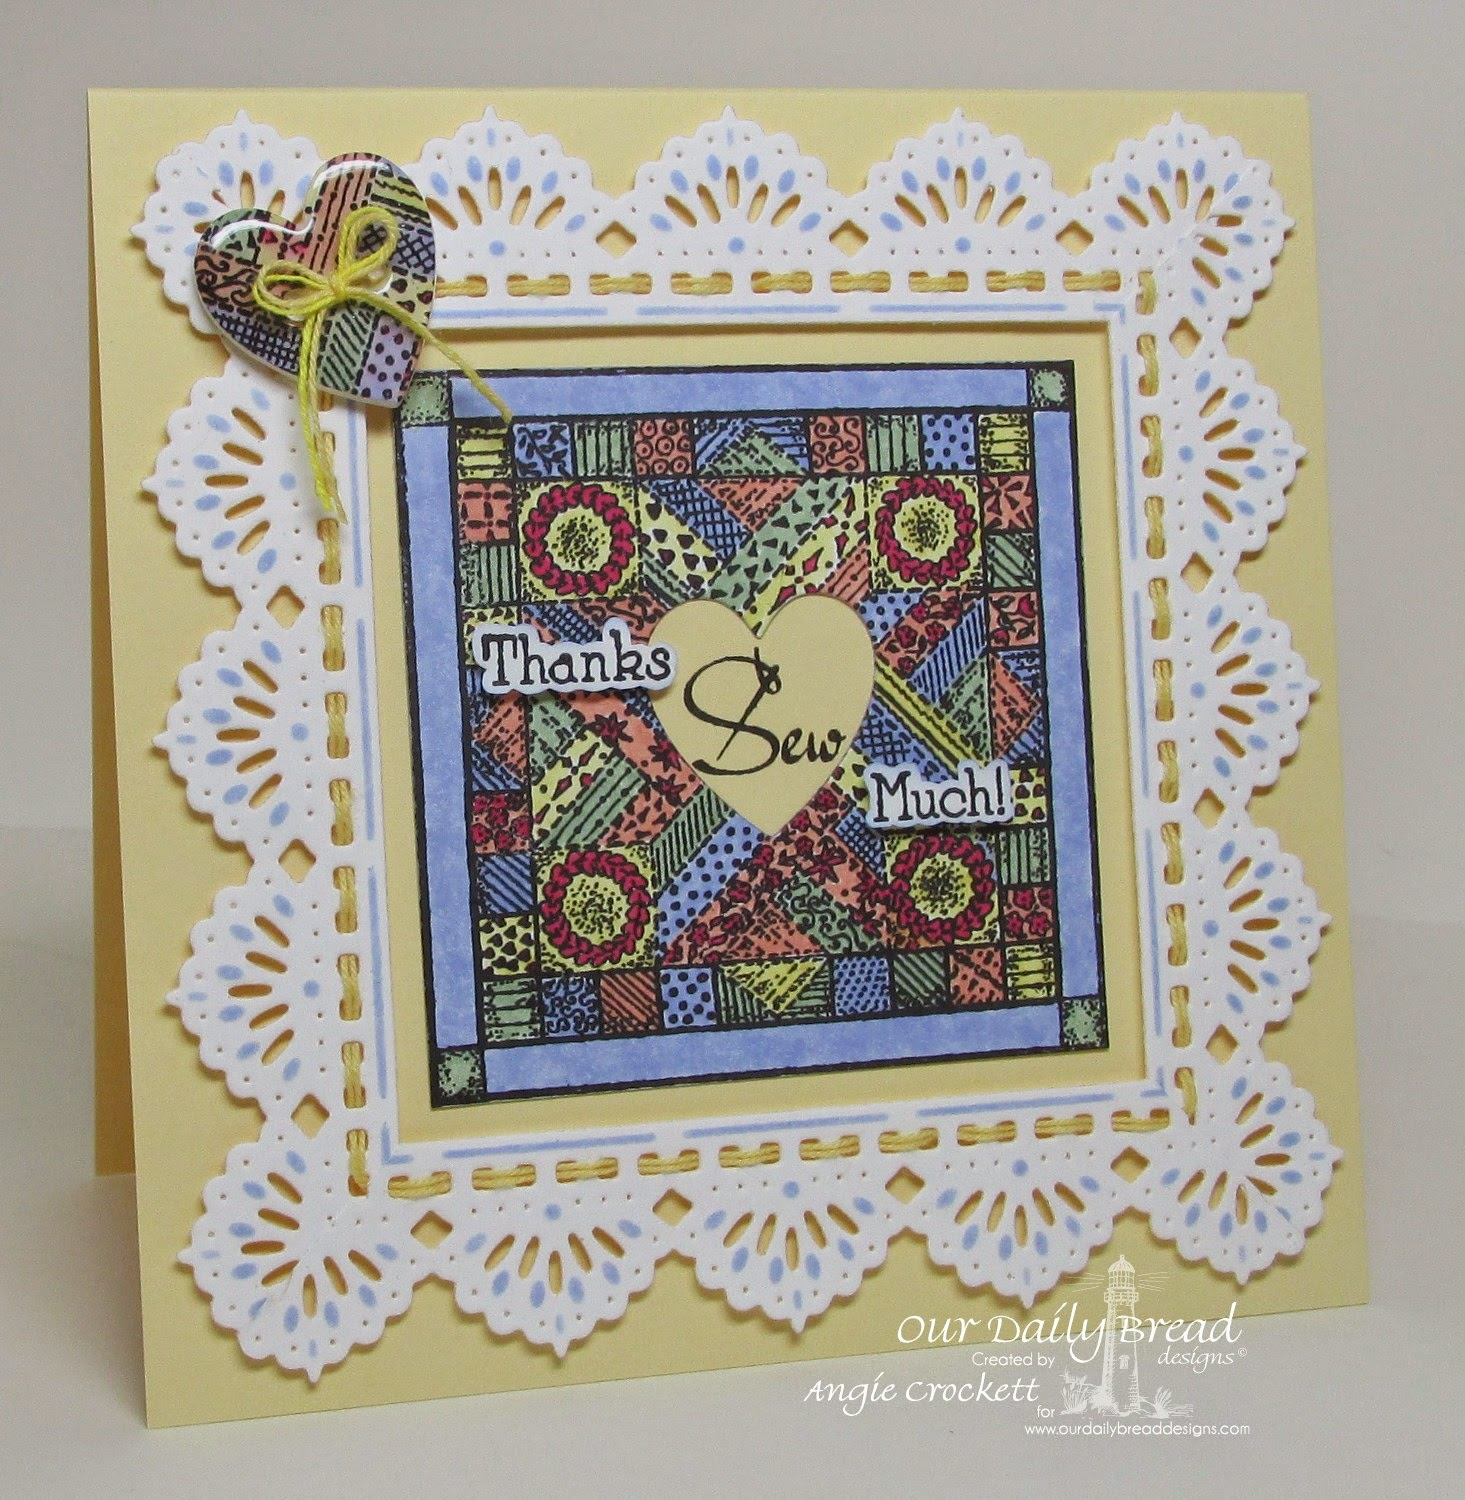 ODBD Quilts, ODBD Custom Ornate Hearts Dies, ODBD Custom Beautiful Borders Dies, Card Designer Angie Crockett